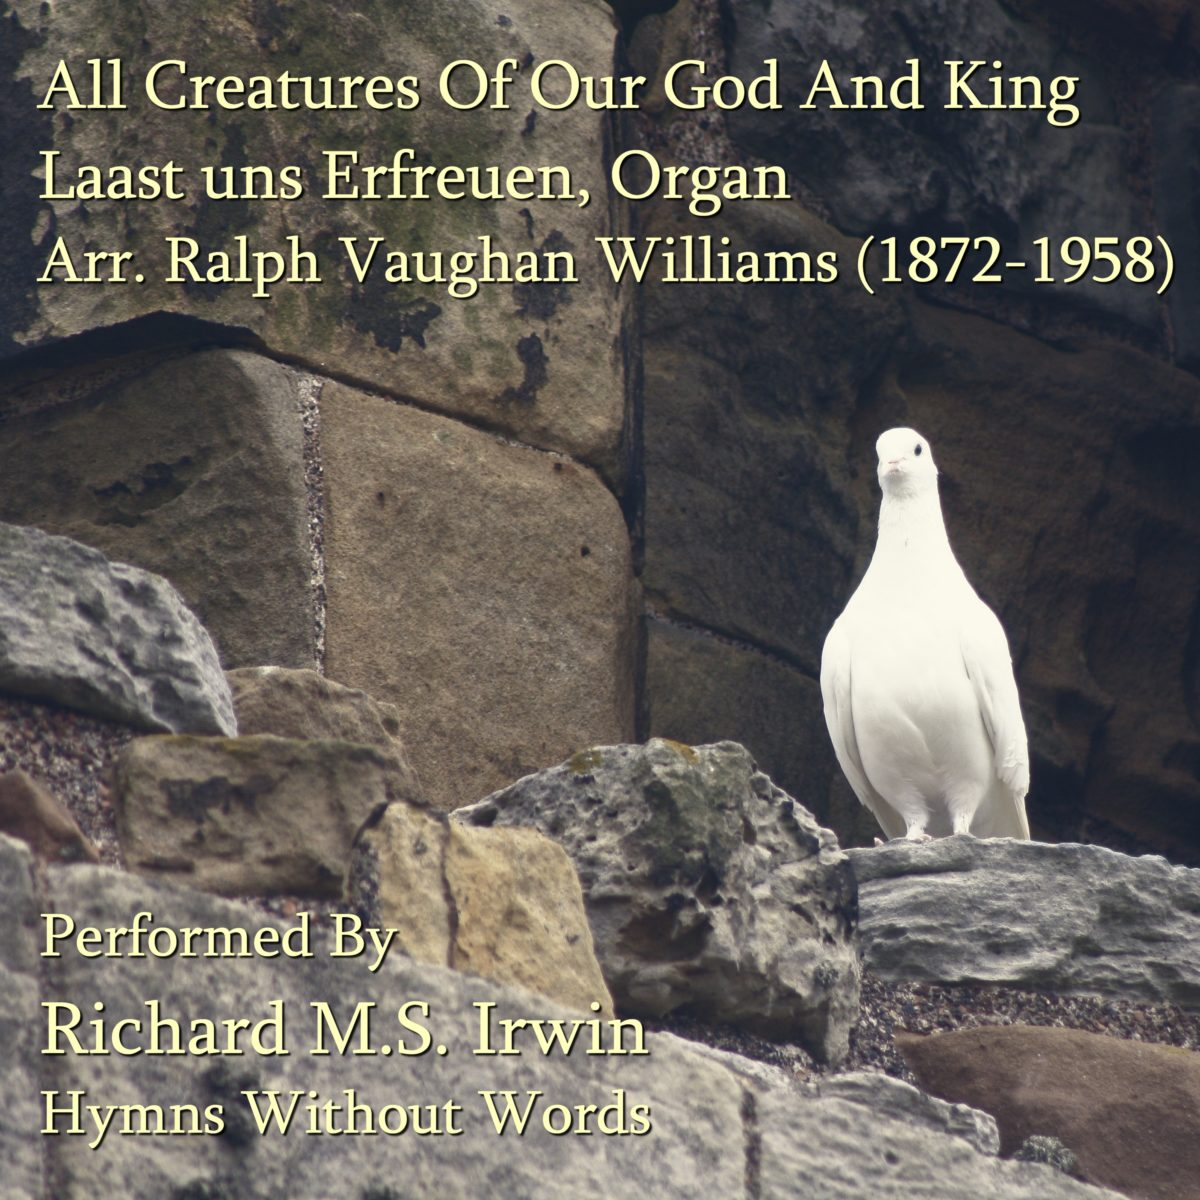 All Creatures Of Our God And King (Lasst Uns Erfreuen, Organ, 7 Verses)